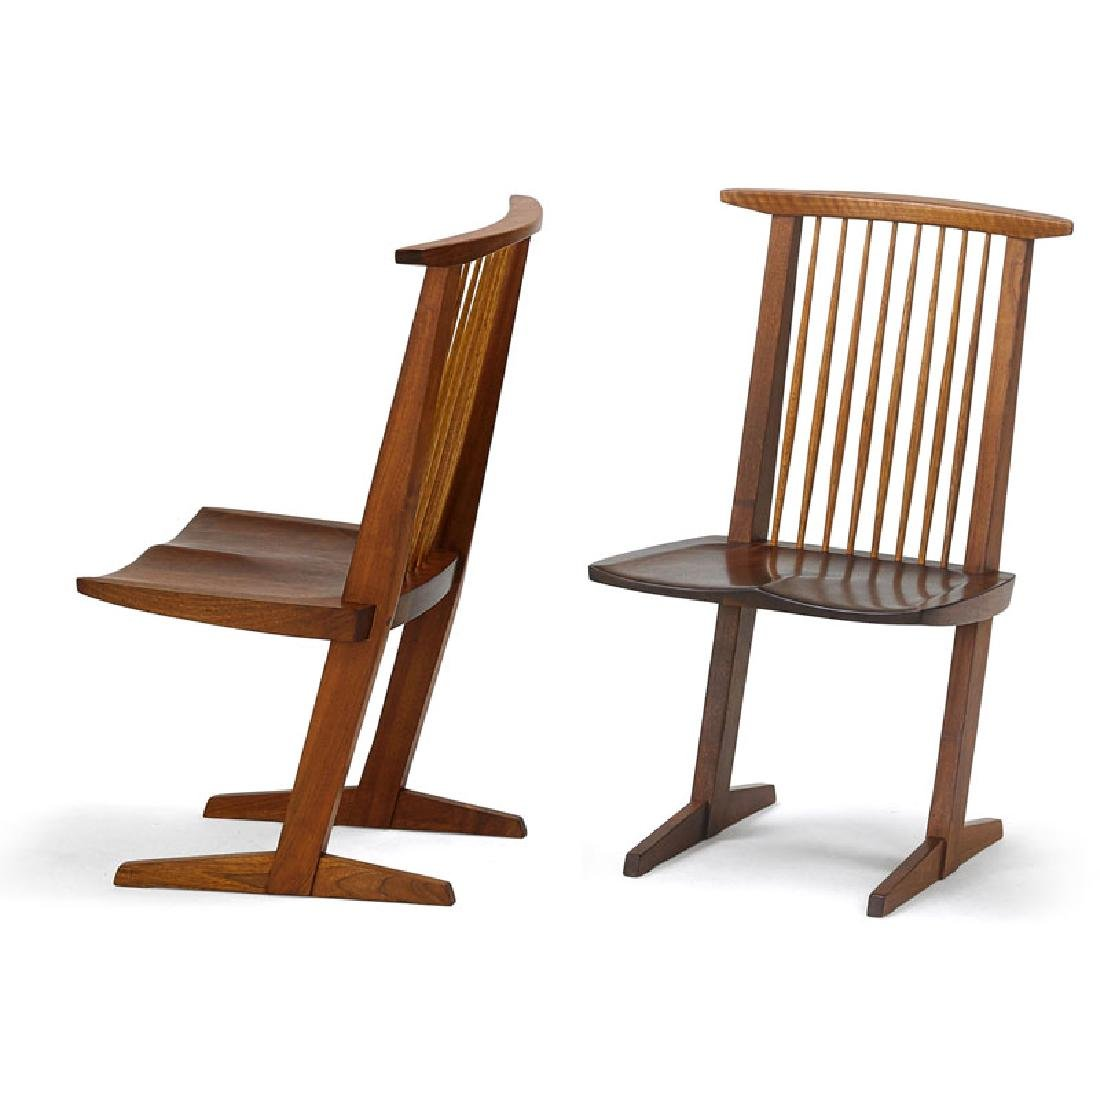 GEORGE NAKASHIMA Two Conoid chairs